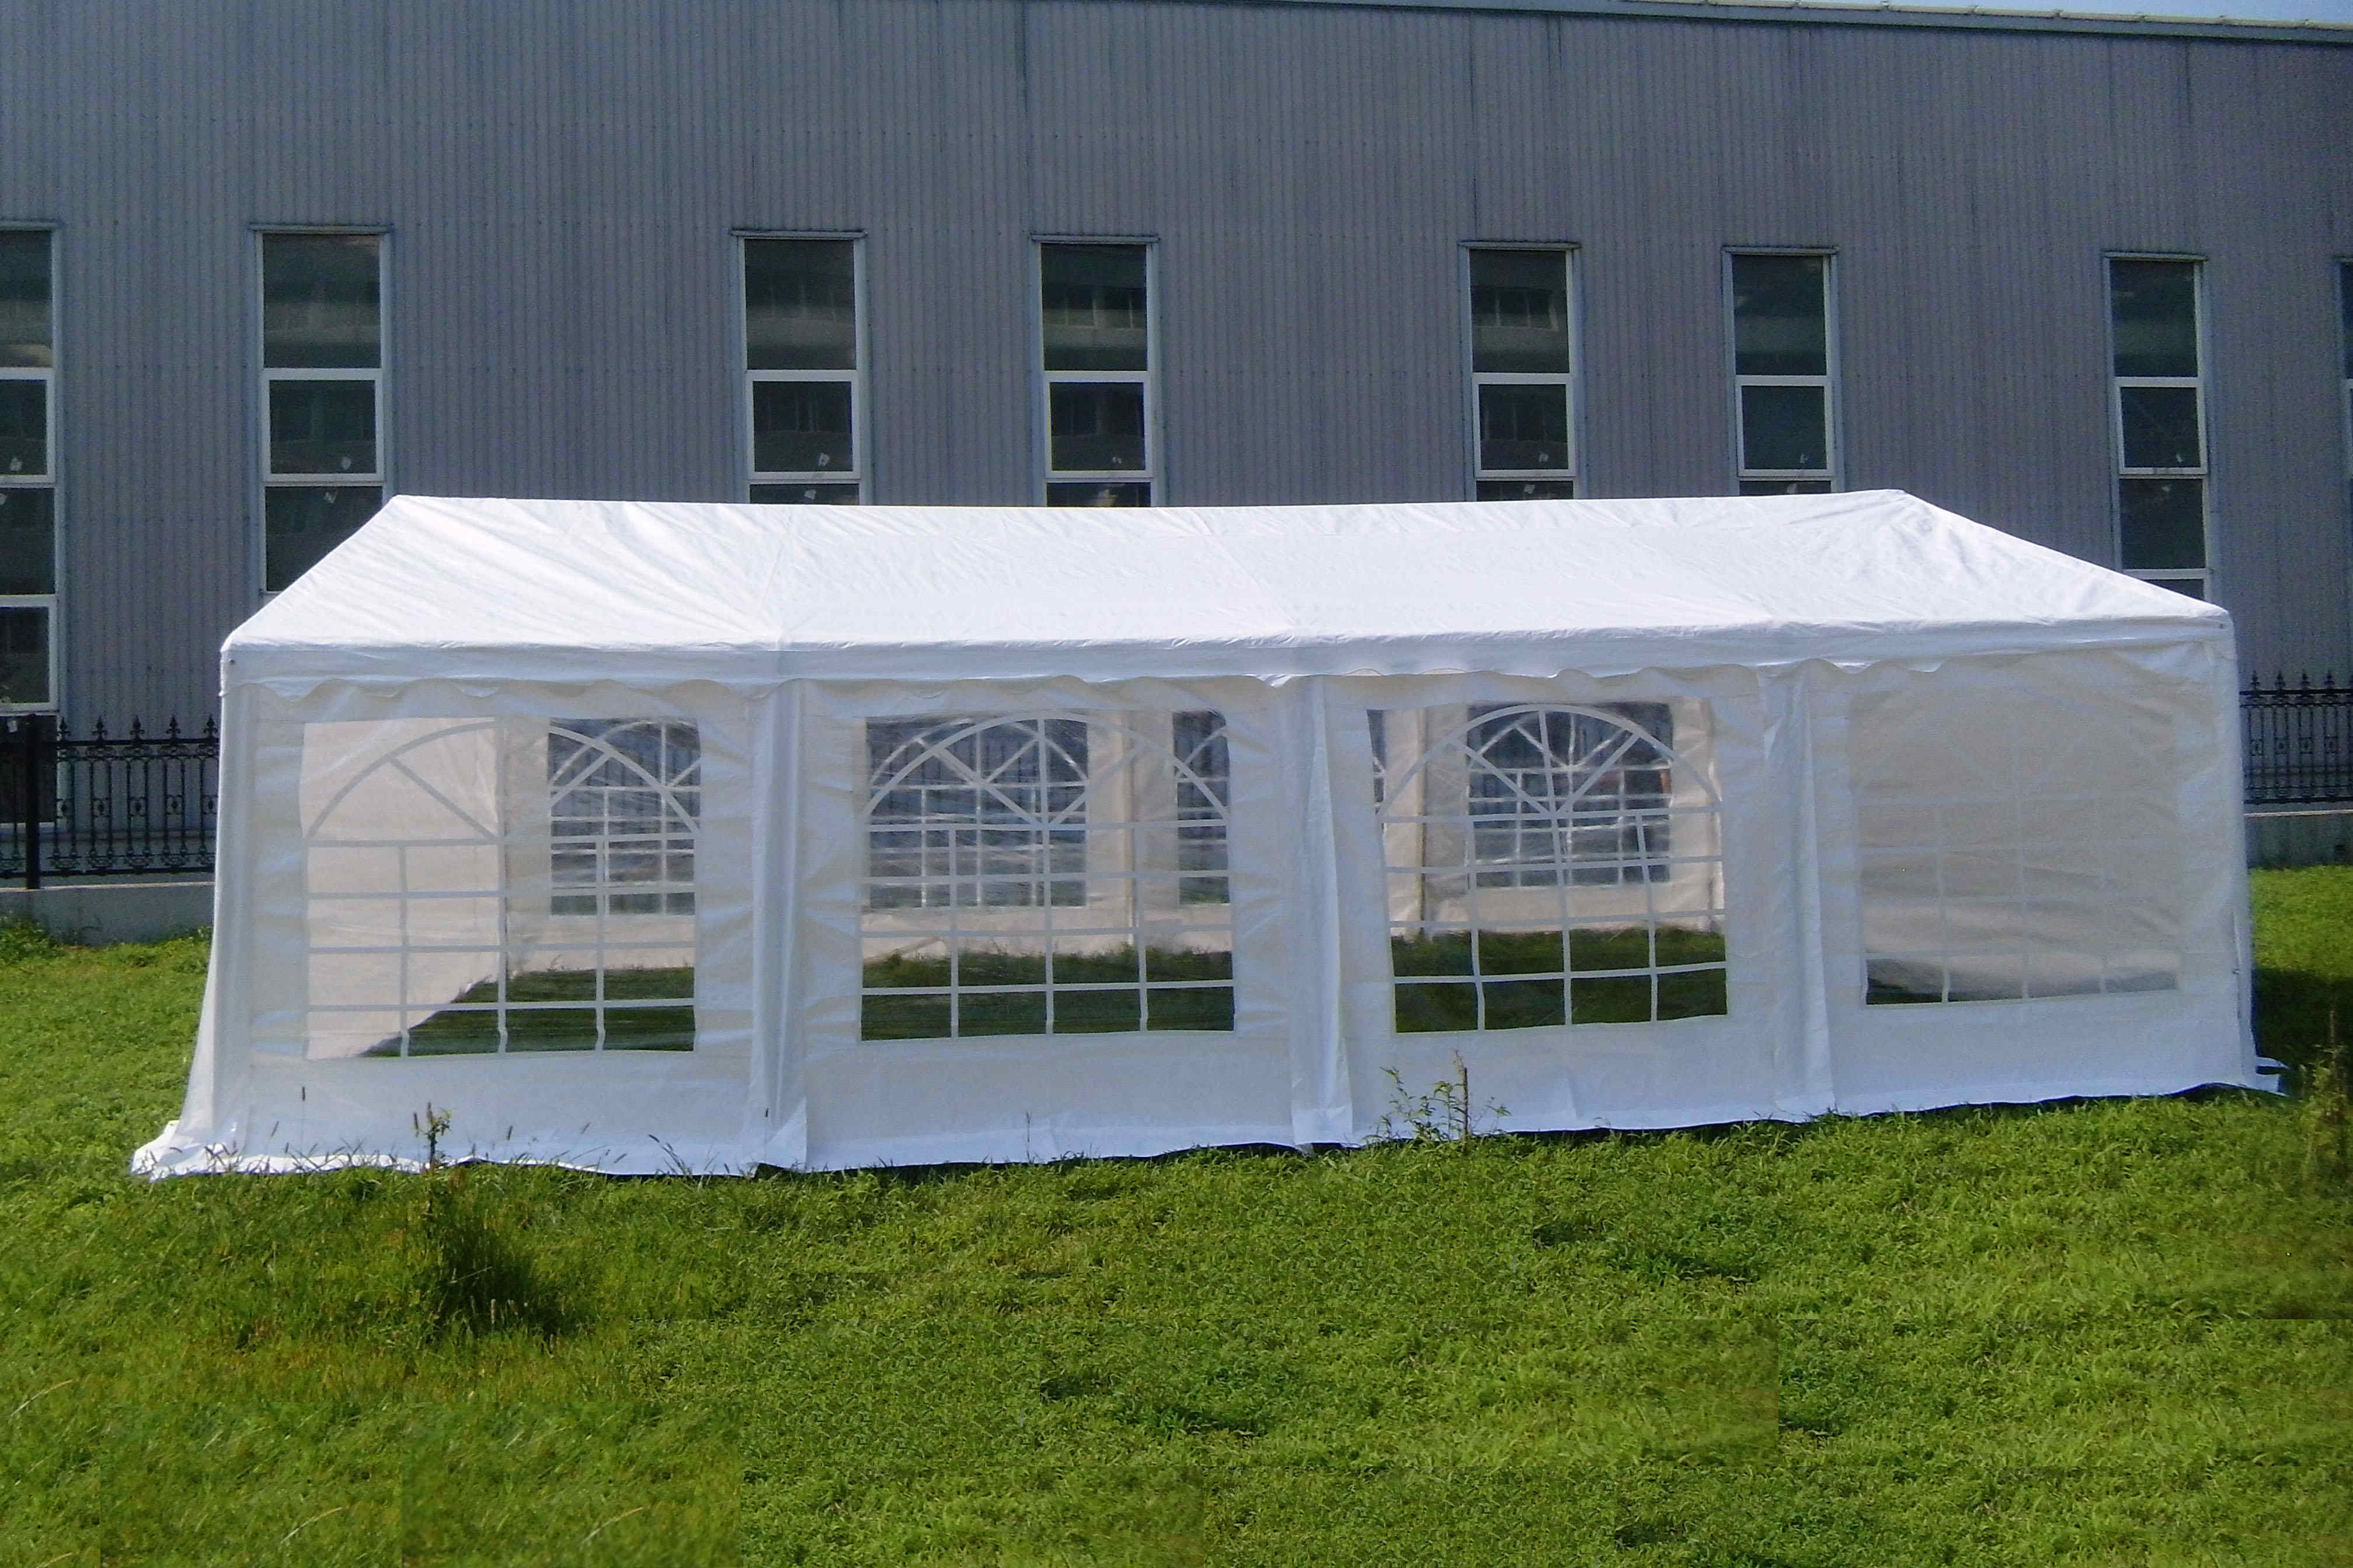 26 x 16 Ft Heavy Duty Commercial Party Canopy Car Shelter Wedding Camping  Tent